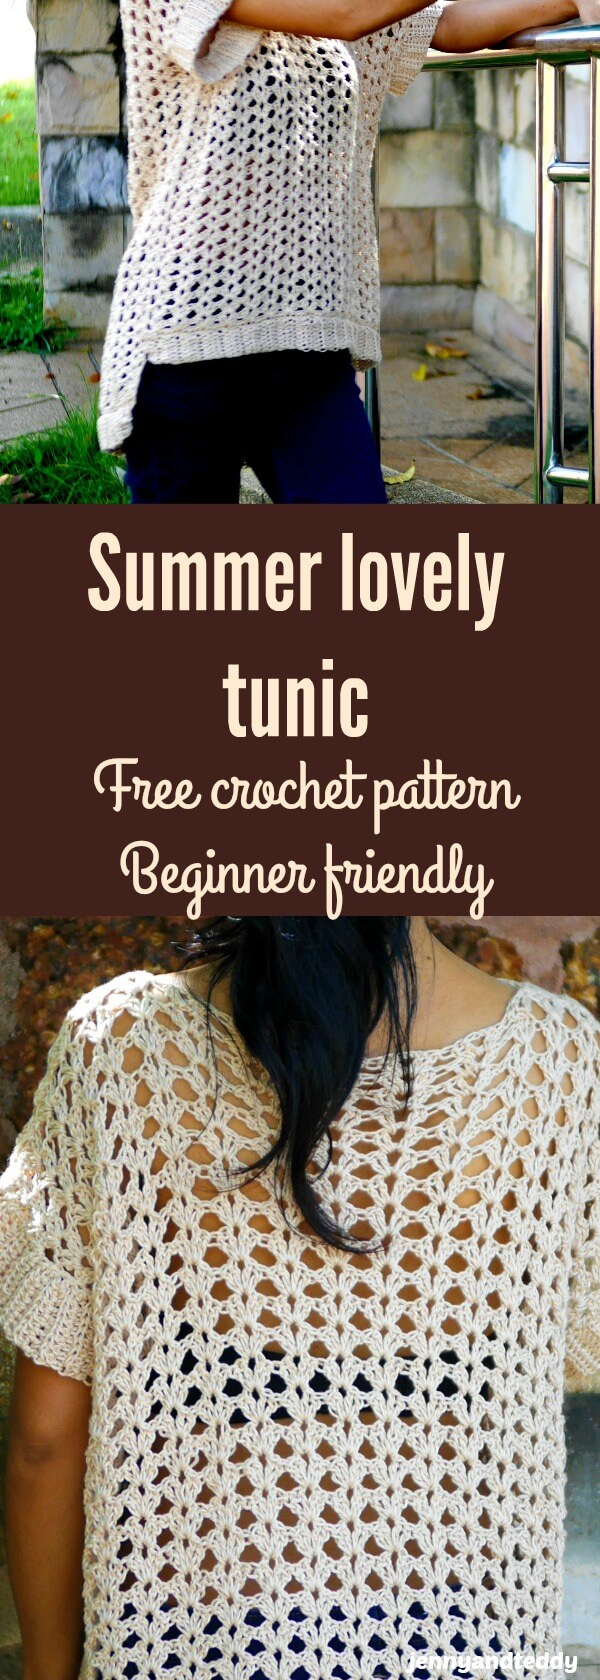 easy summer tunic free crochet pattern by jennyandteddy